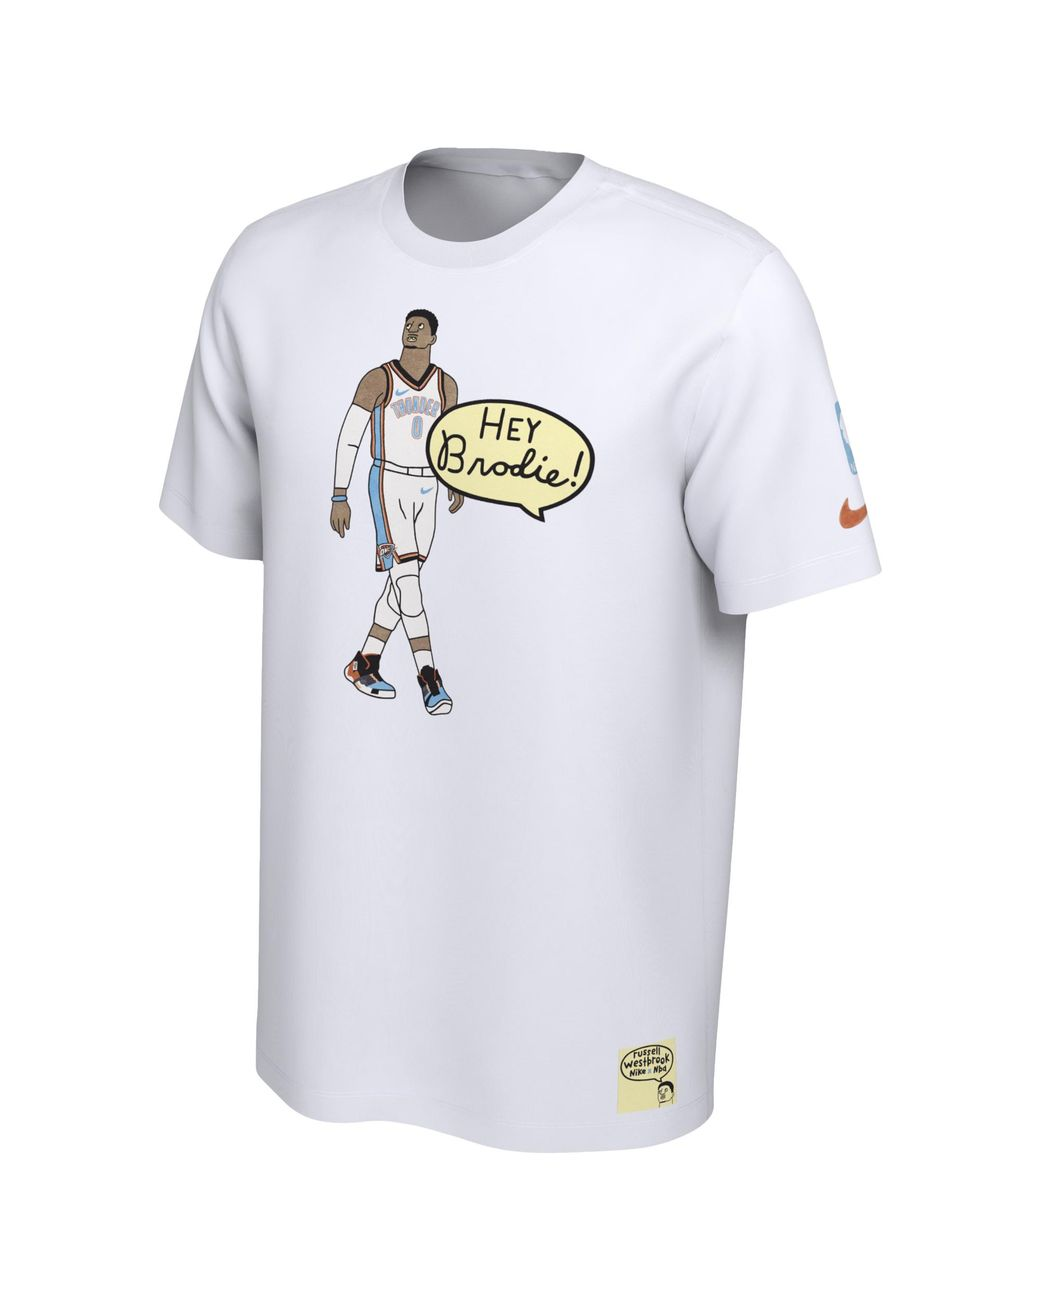 quality design 2a812 4e4bb Nike Russell Westbrook Nba Marlon Sassy Doodle Player T ...